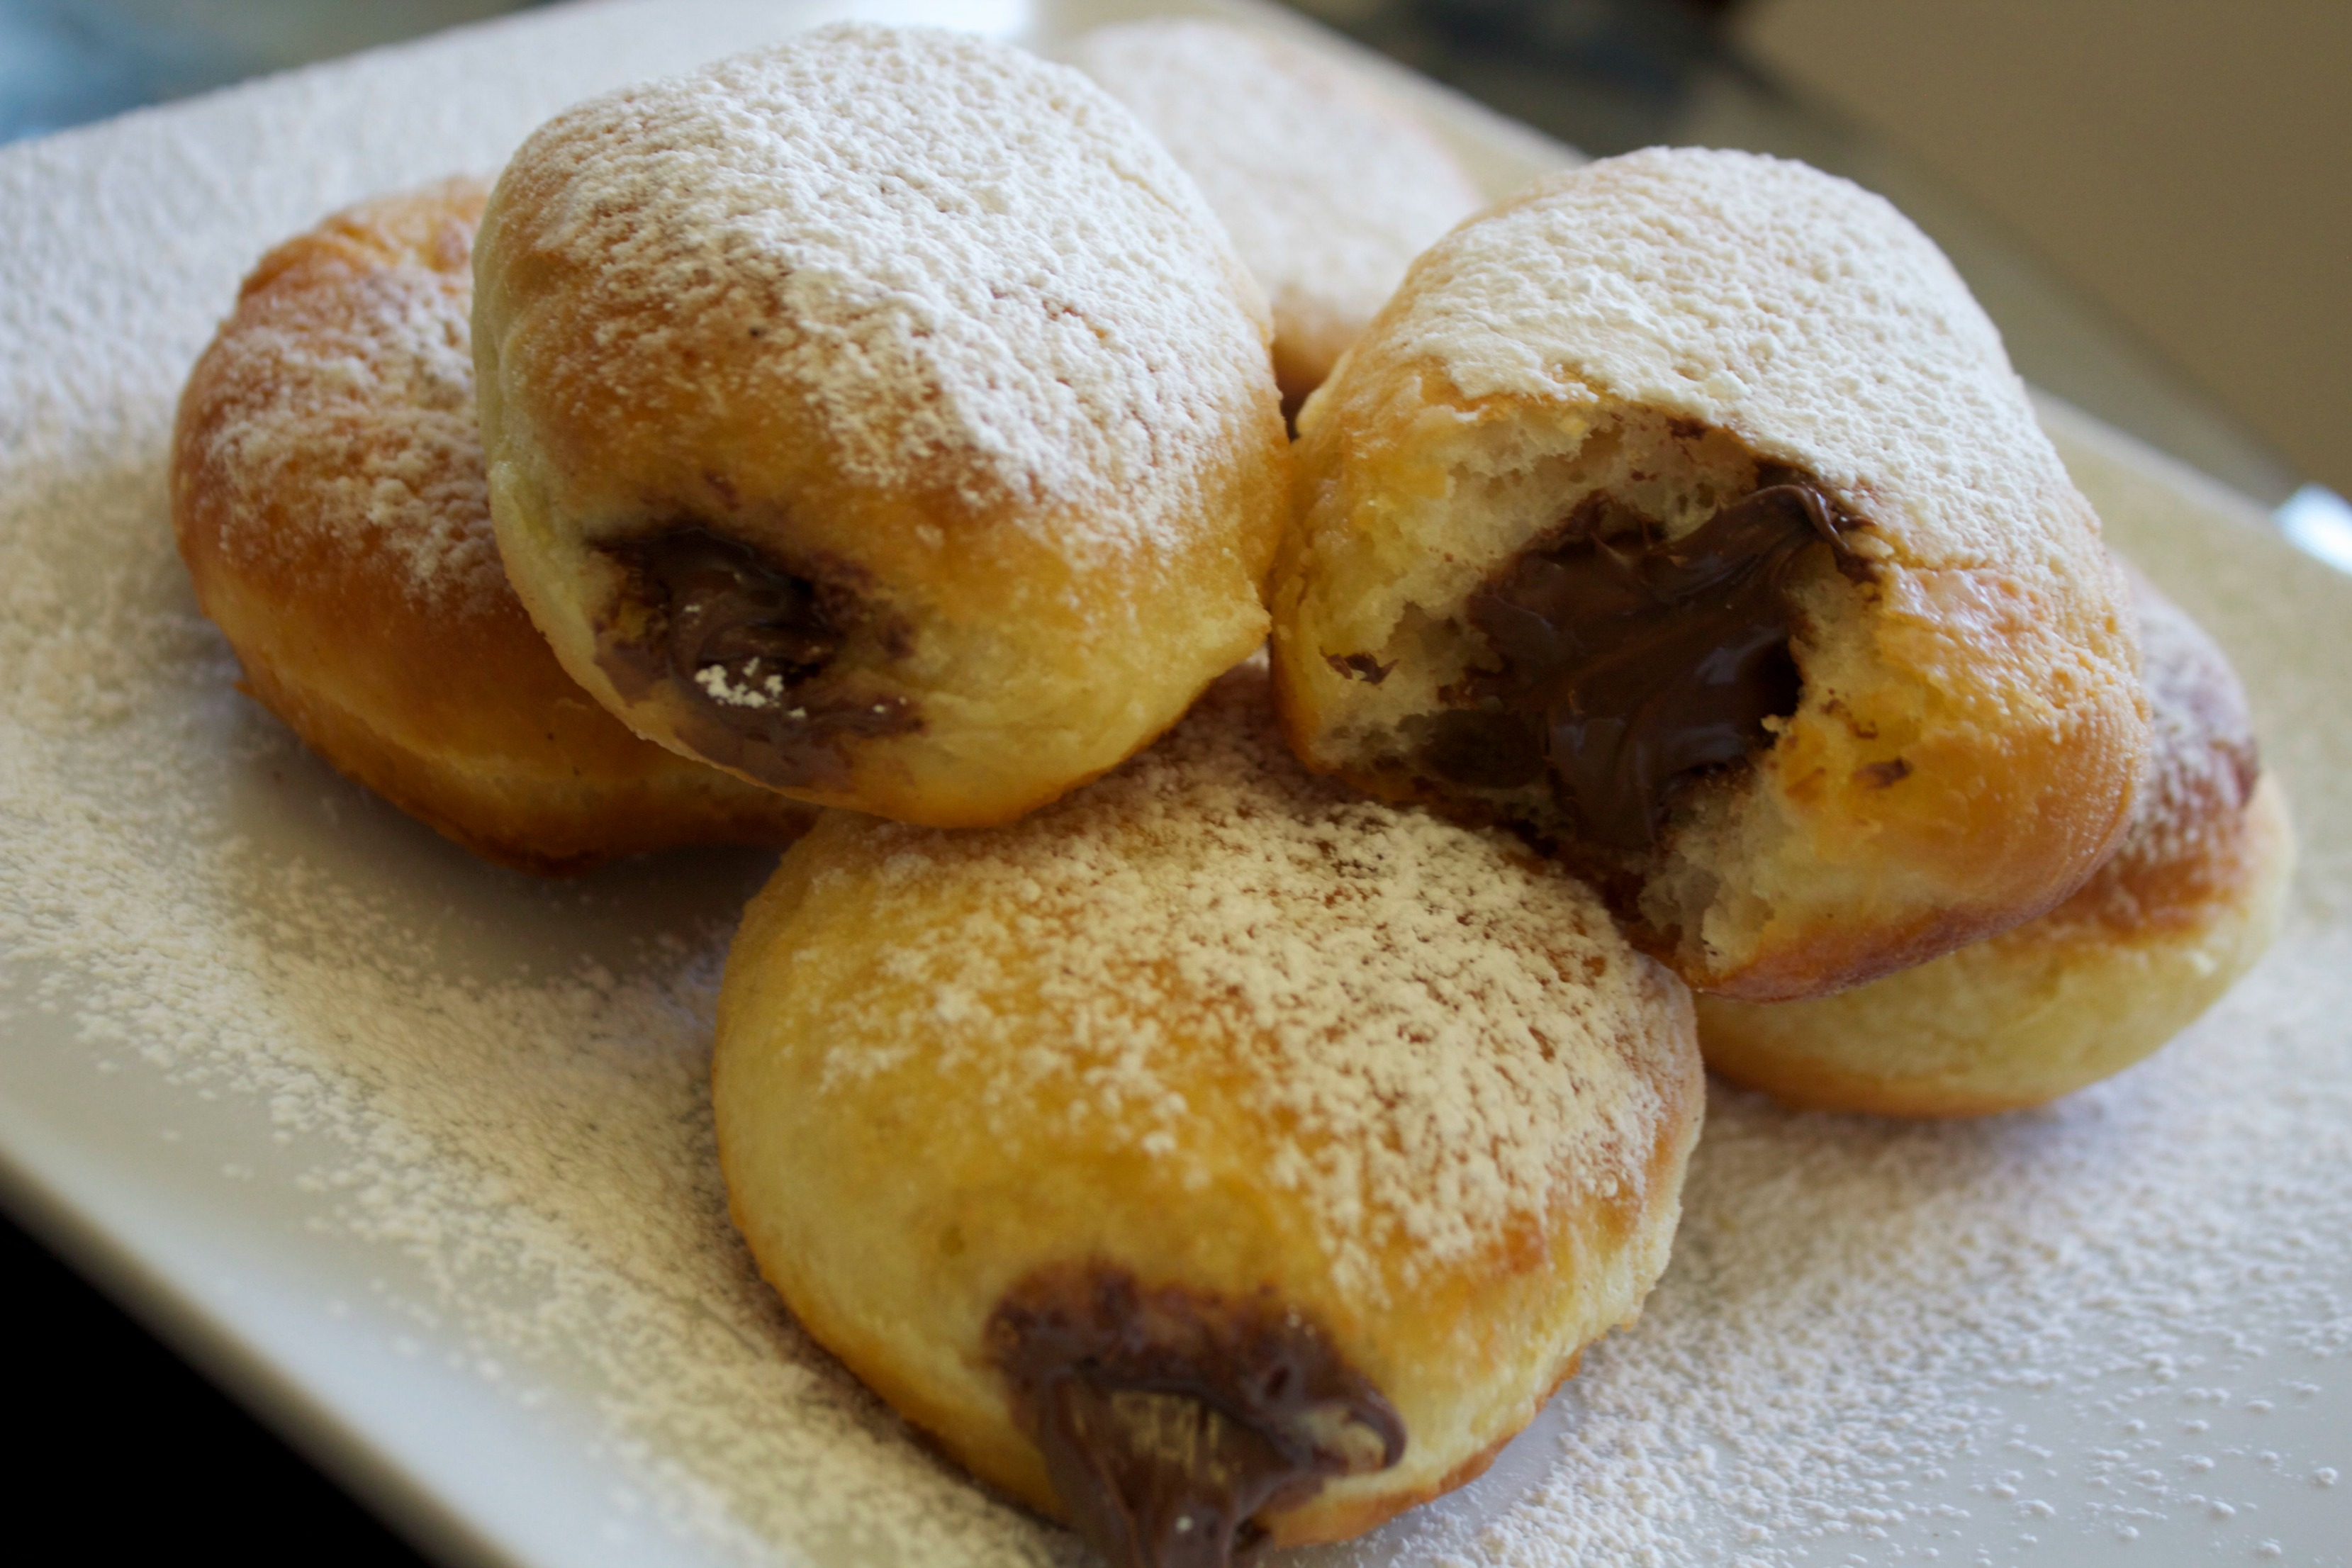 Nutella Stuffed Donuts made with a chocolate hazelnut spread filling and dusted with powdered sugar.